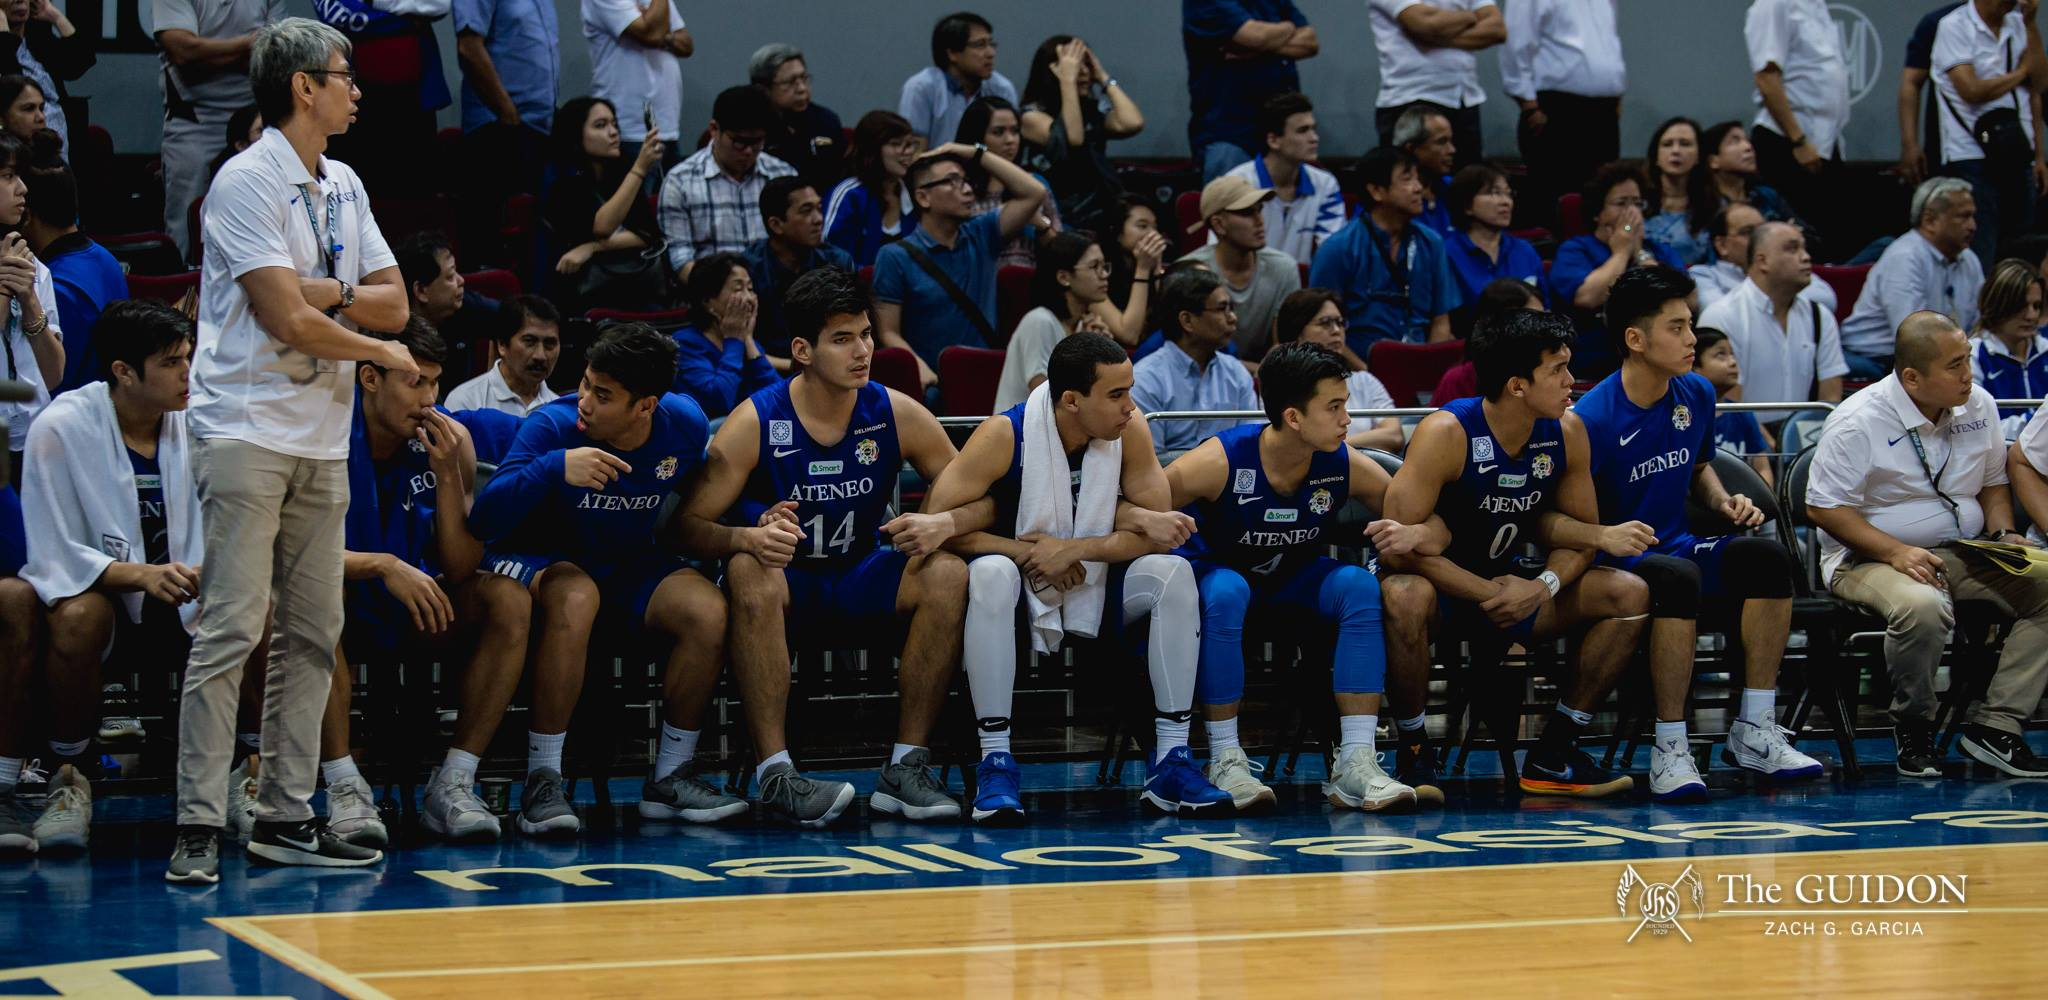 HEART-POUNDING. The Ateneo bench brace themselves for a cardiac game.  Photo by Zach Garcia/The GUIDON.